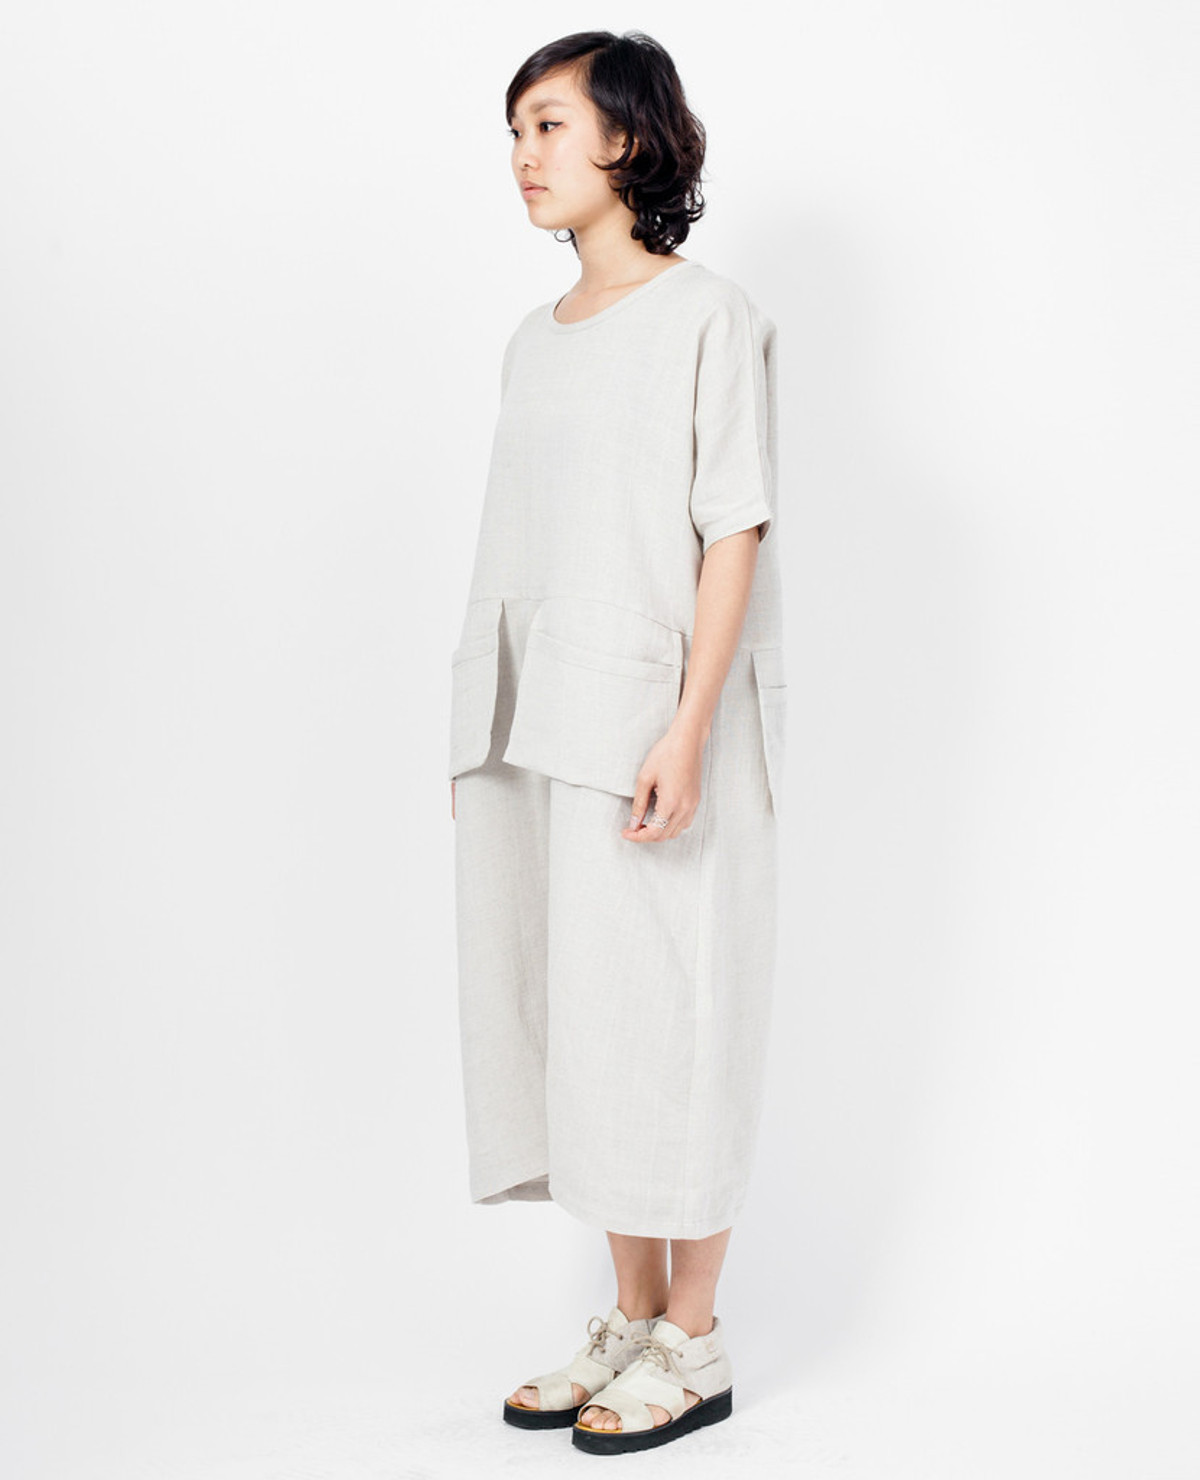 Grock Jumpsuit - Natural Linen